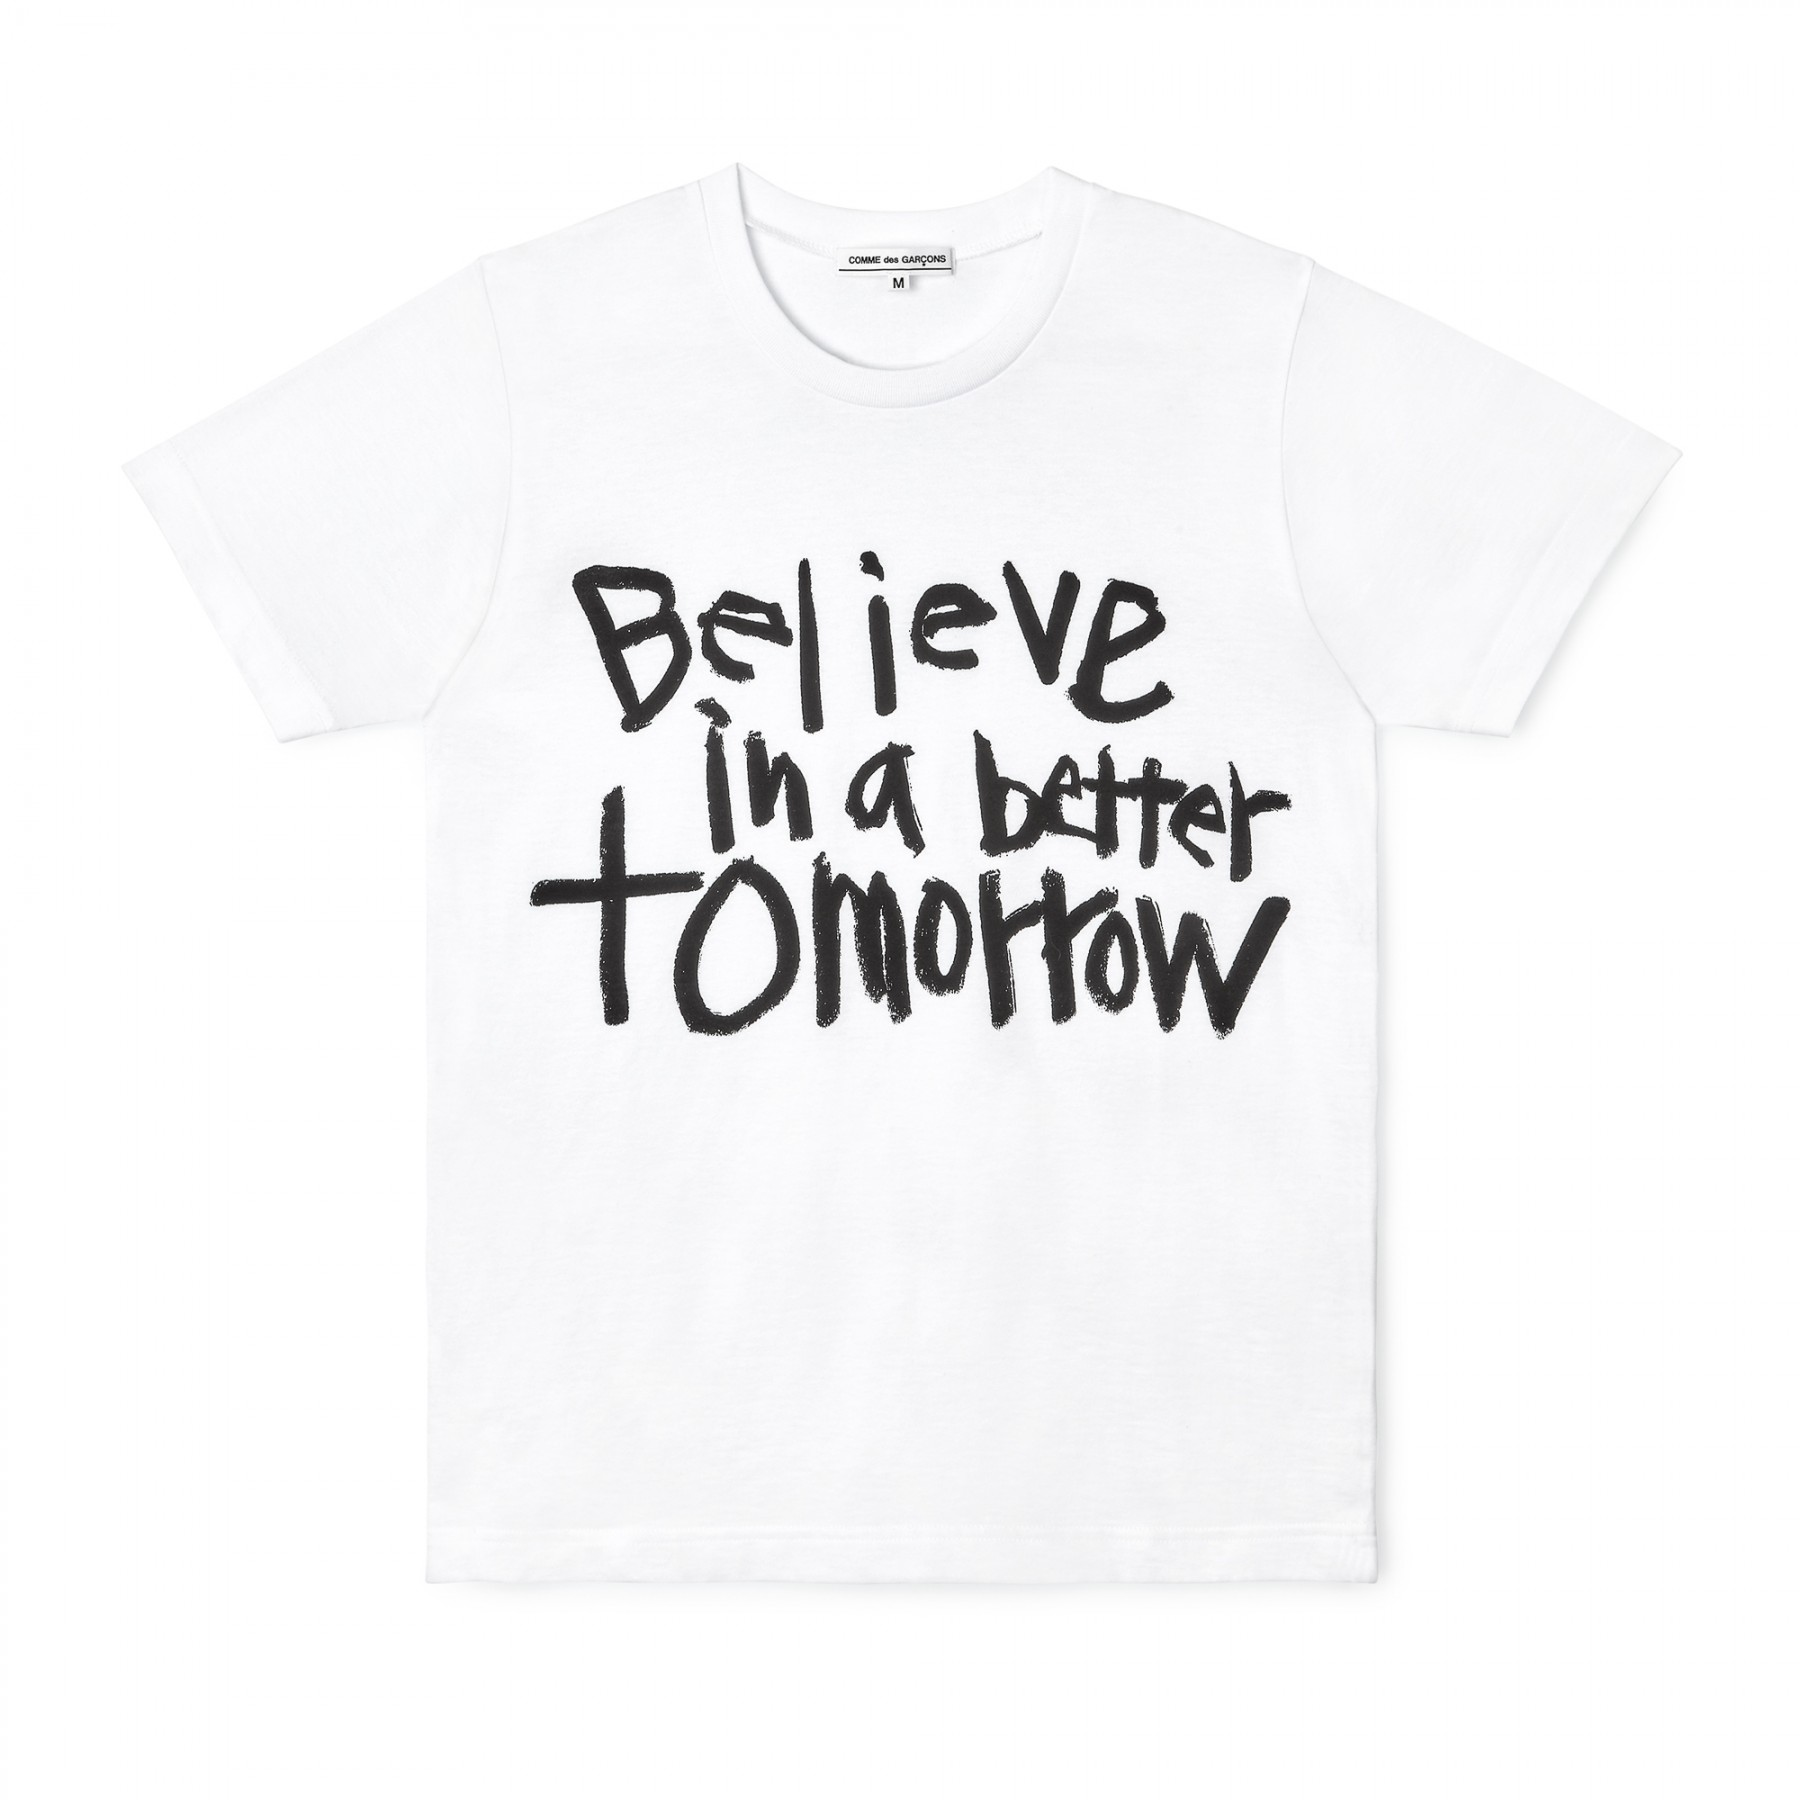 Comme Des Garcons releases Collection in Support of Black Lives Matter